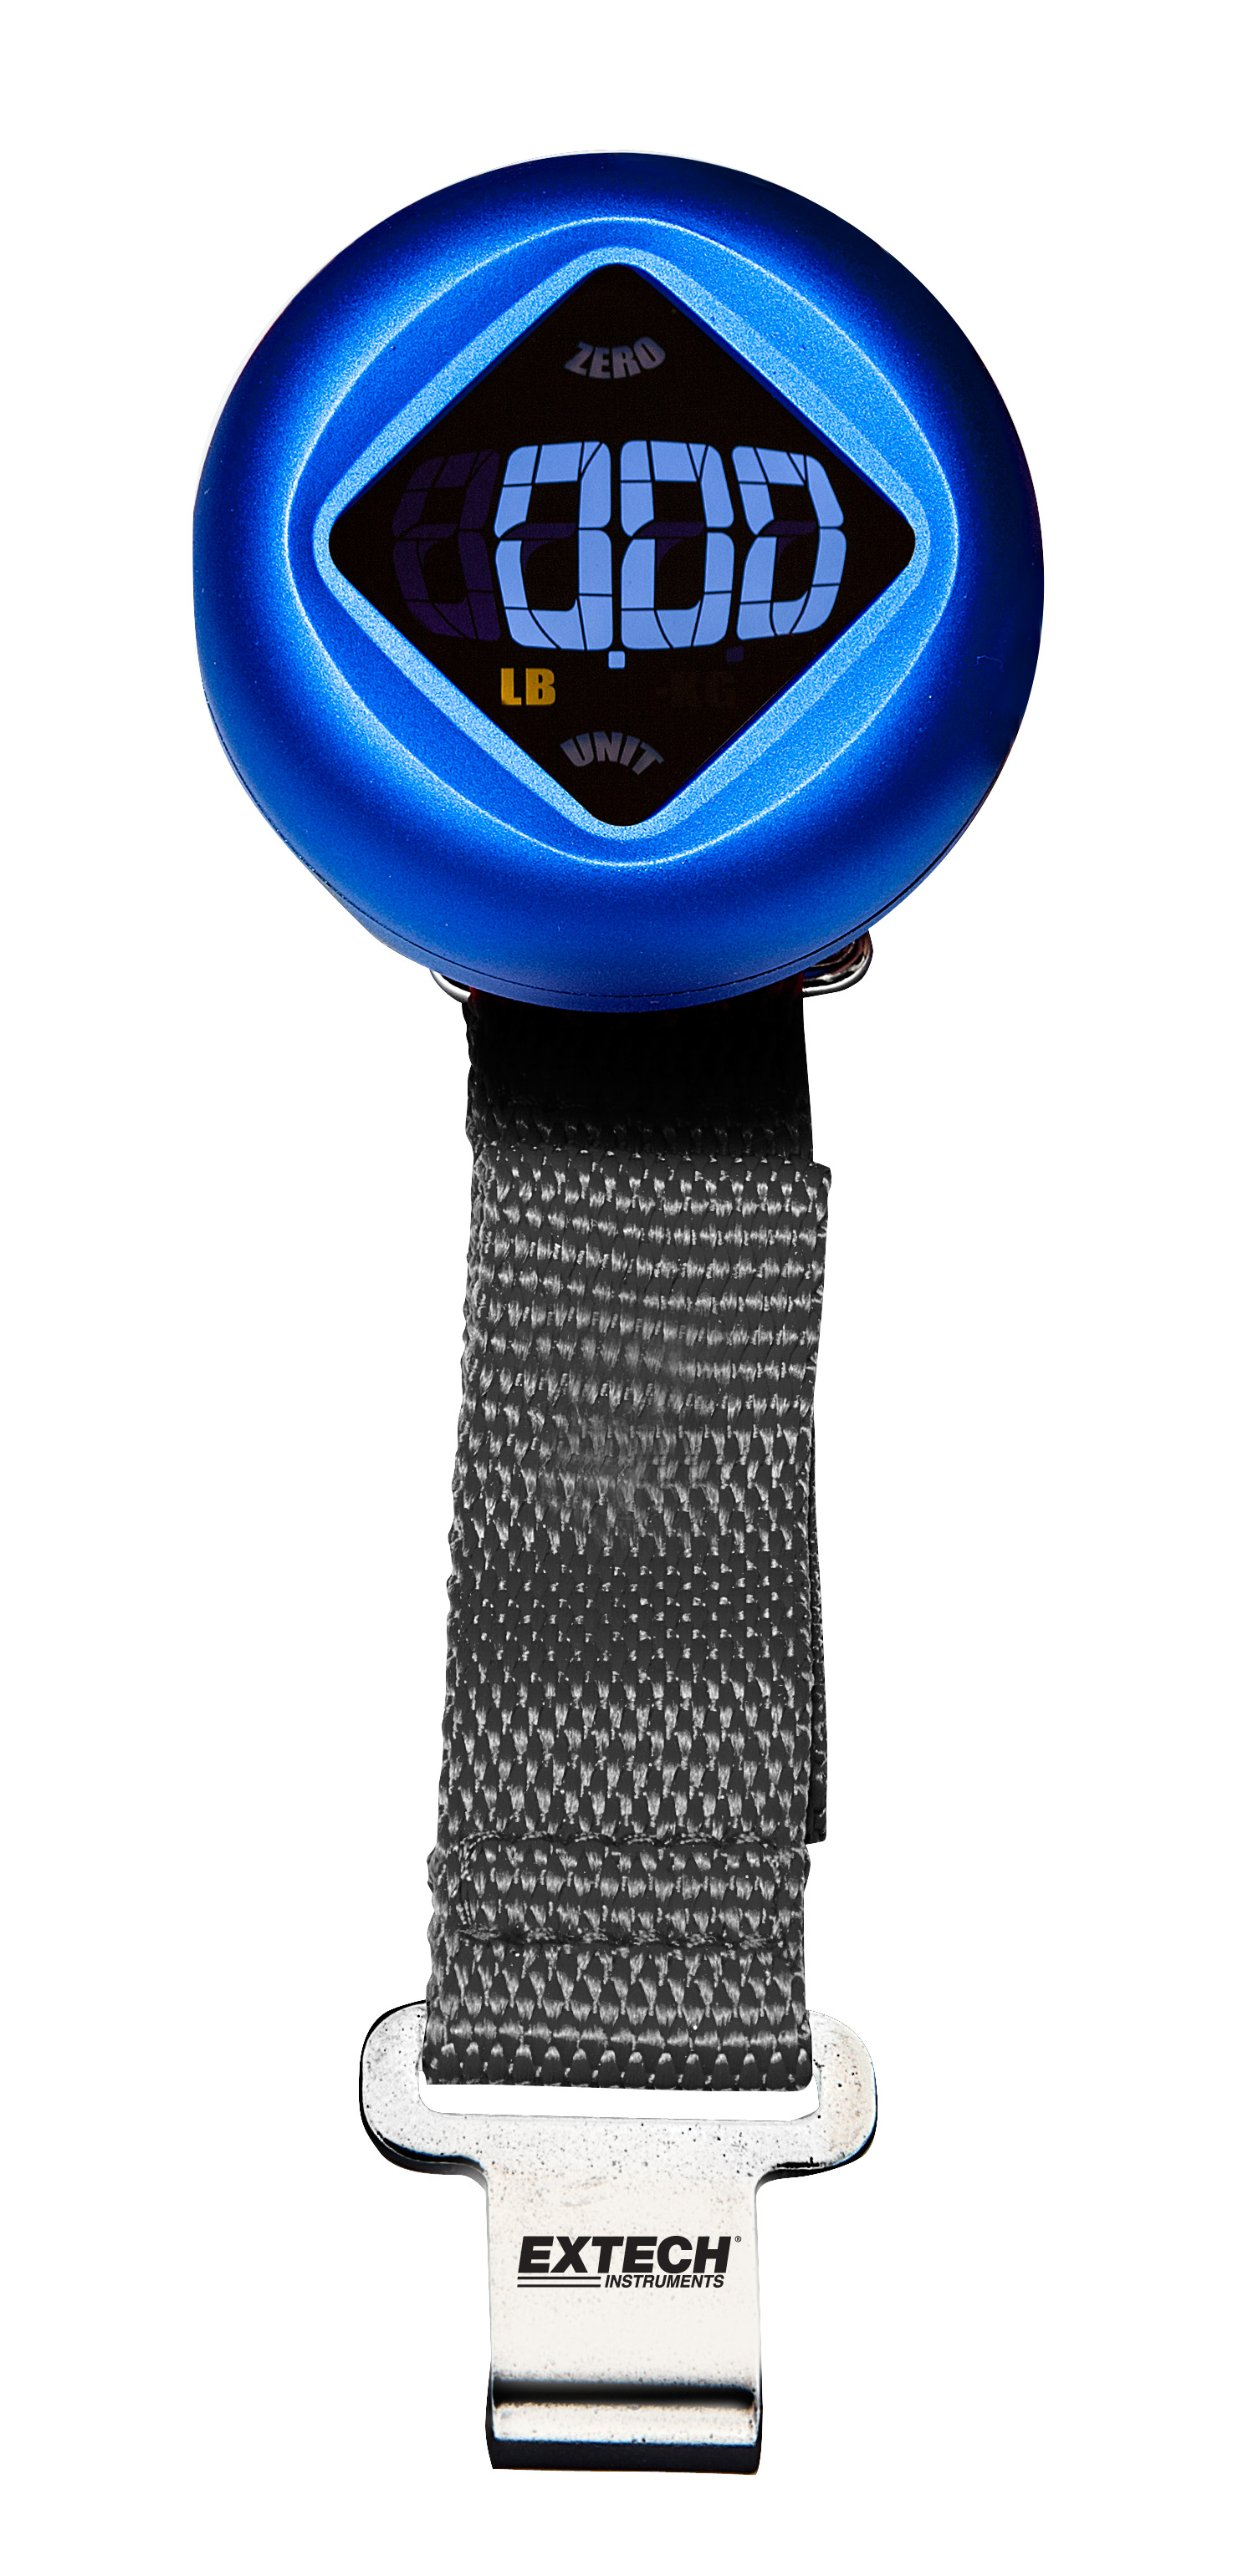 Extech SC50 Portable Digital Luggage Scale by Extech